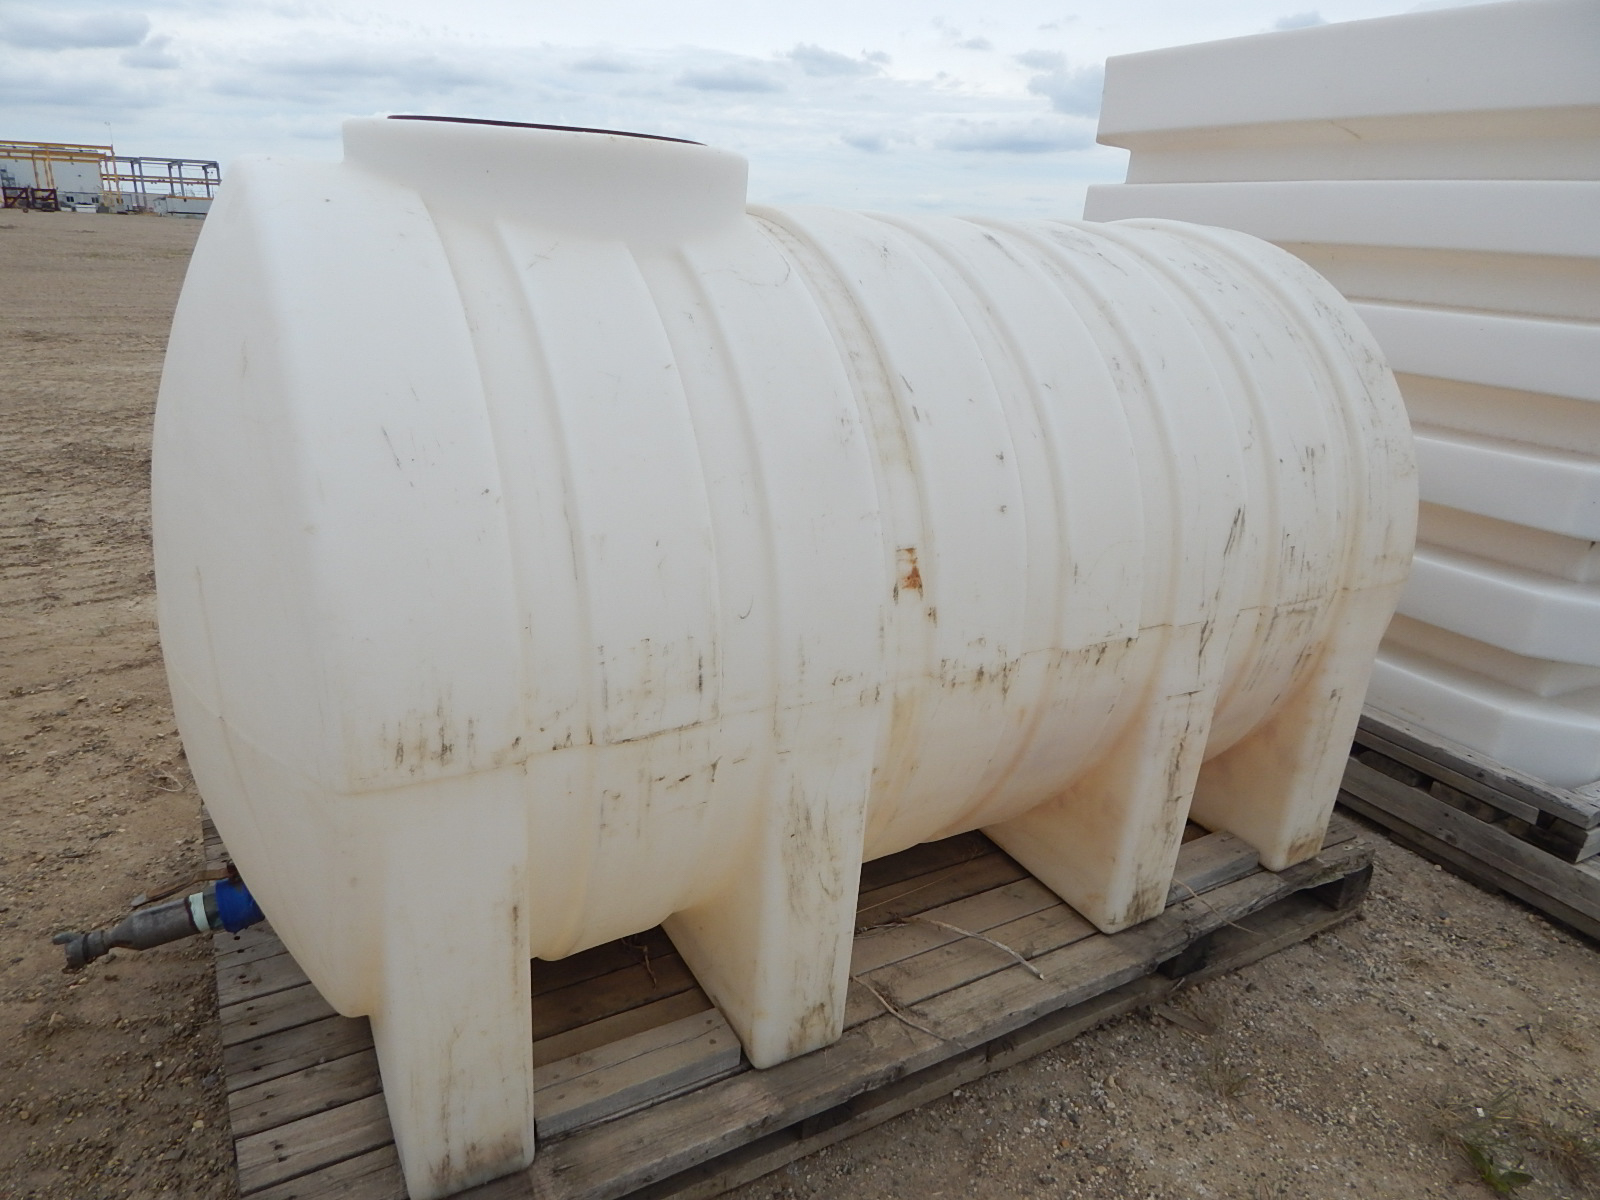 LIQUID STORAGE TANK WITH APPROX. 500GALLON CAPACITY, S/N: N/A - Image 2 of 2